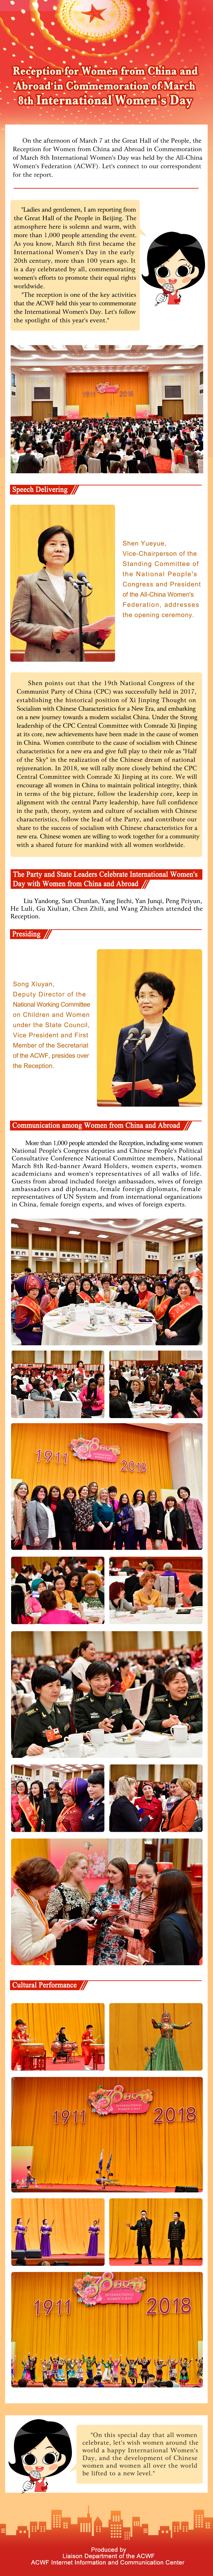 Reception for Women from China and Abroad in Commemoration of March 8th International Women's Day